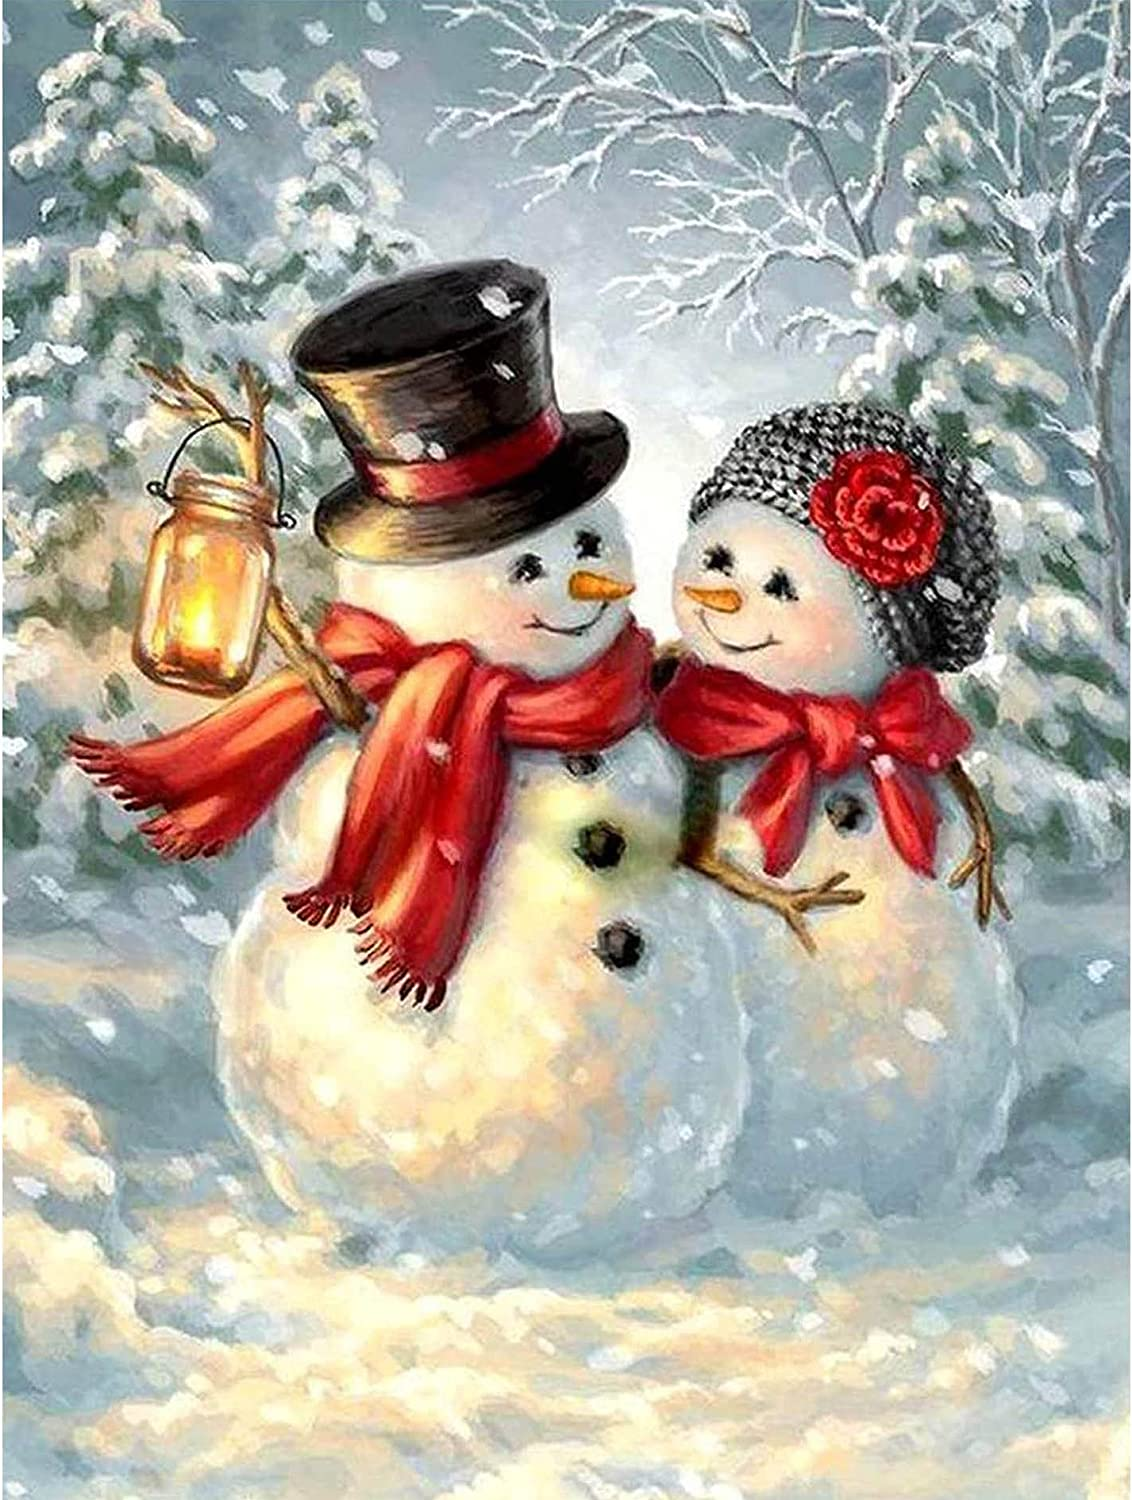 Kaliosy 5D Diamond Painting Christmas Snowman Couple by Numbers Kit Full Drill, DIY Paint with Diamonds Art for Embroidery Cross Stitch Rhinestone Crystal Home Wall Office Decoration 12x16inch